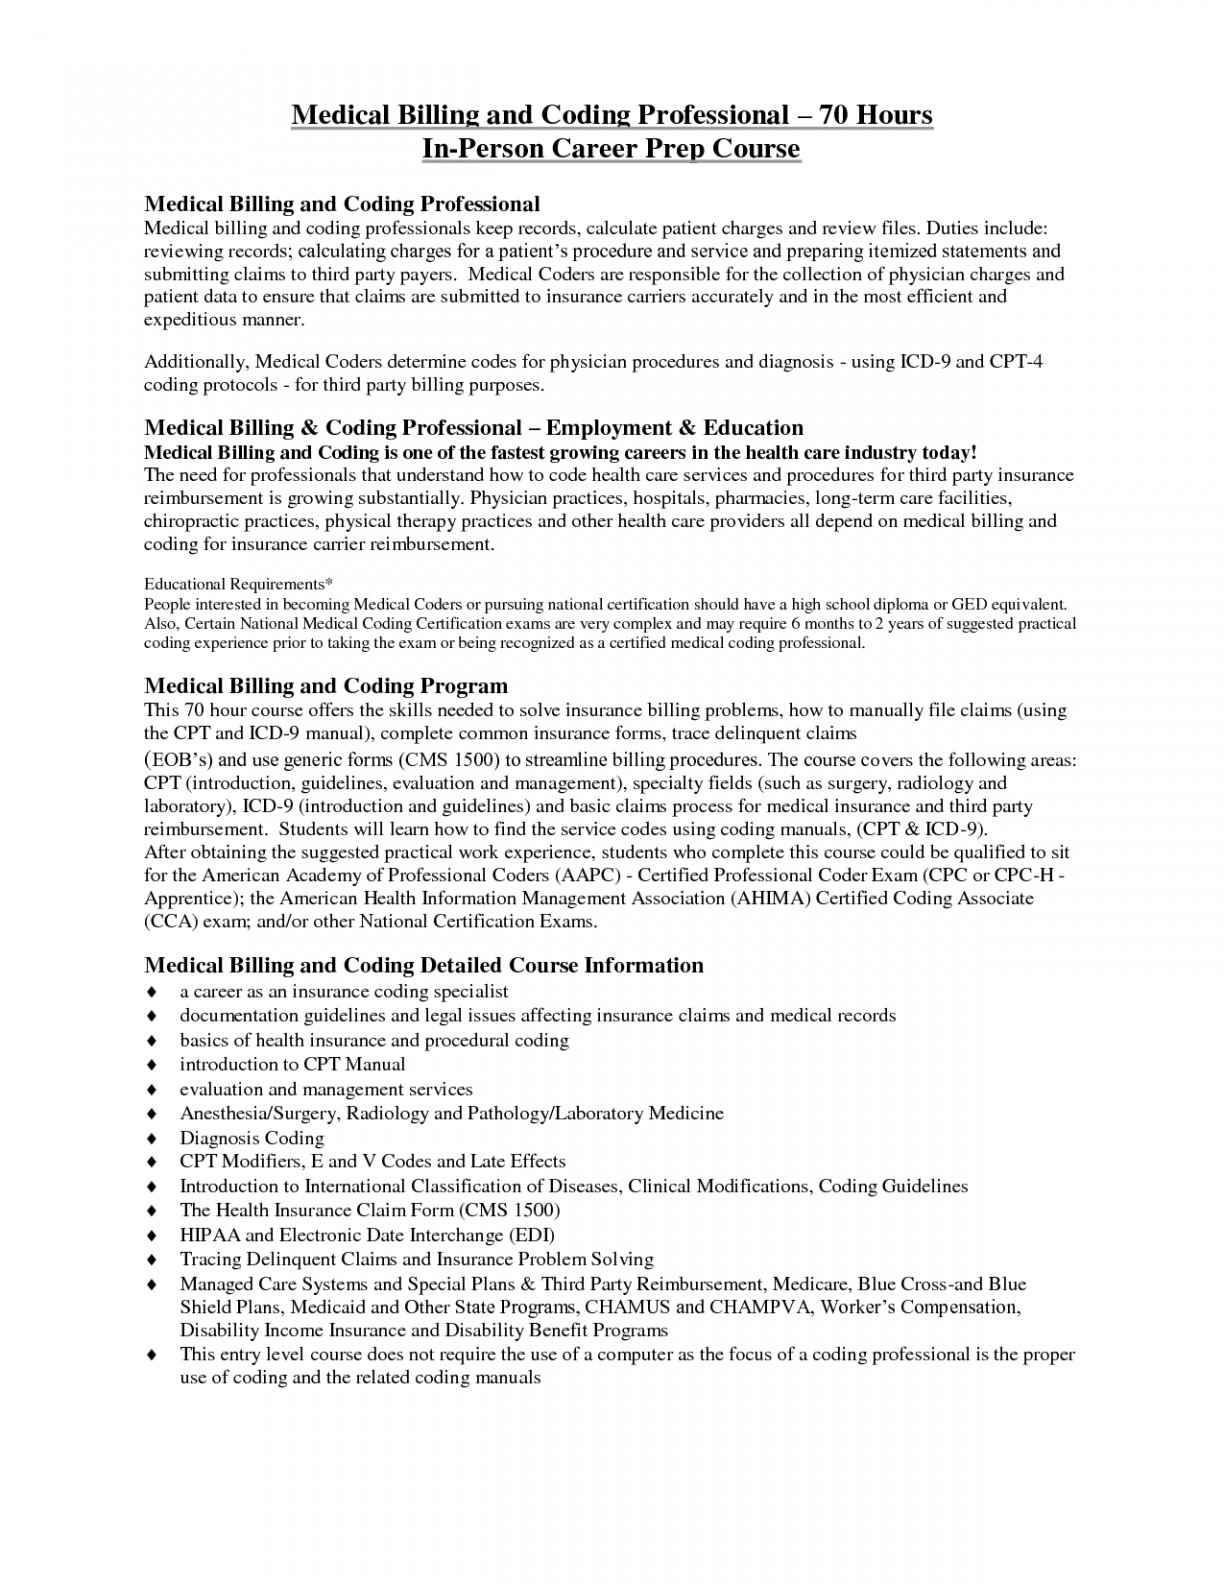 Cpc Practice Exam Free Online And Medical Coding Practice Worksheets - Free Printable Cpc Practice Exam